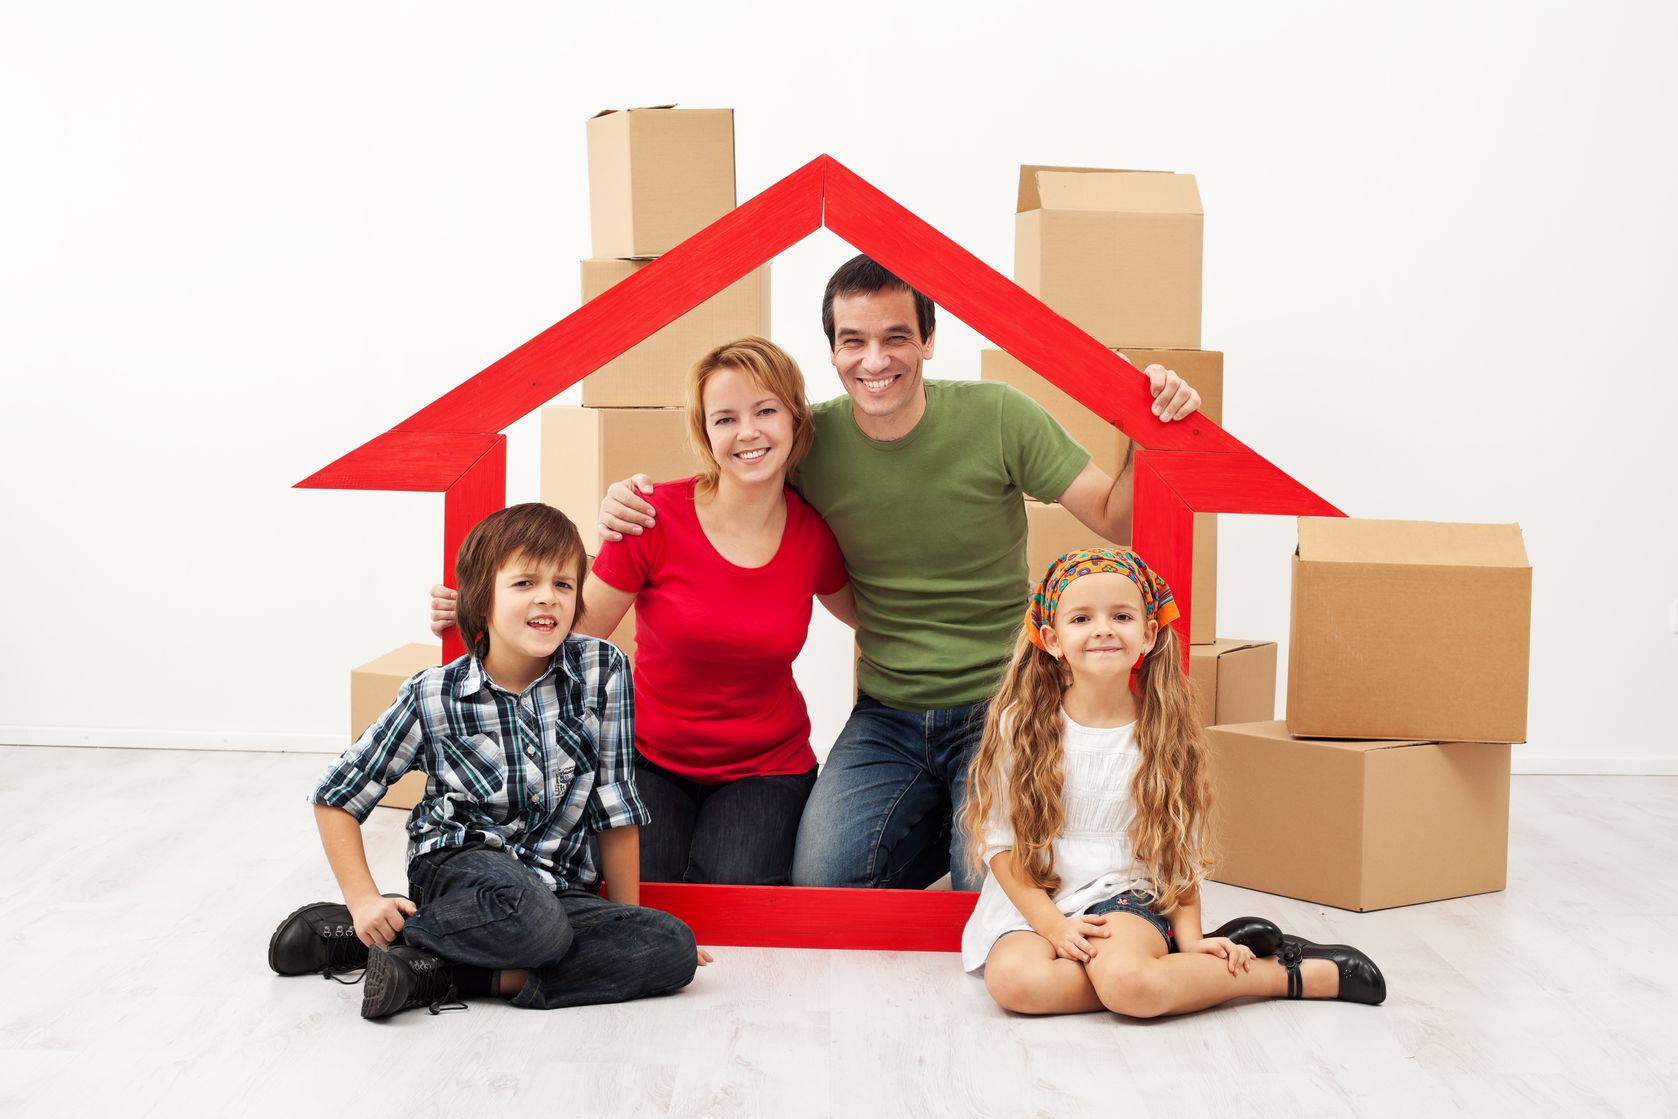 Panama City Homeowners Insurance